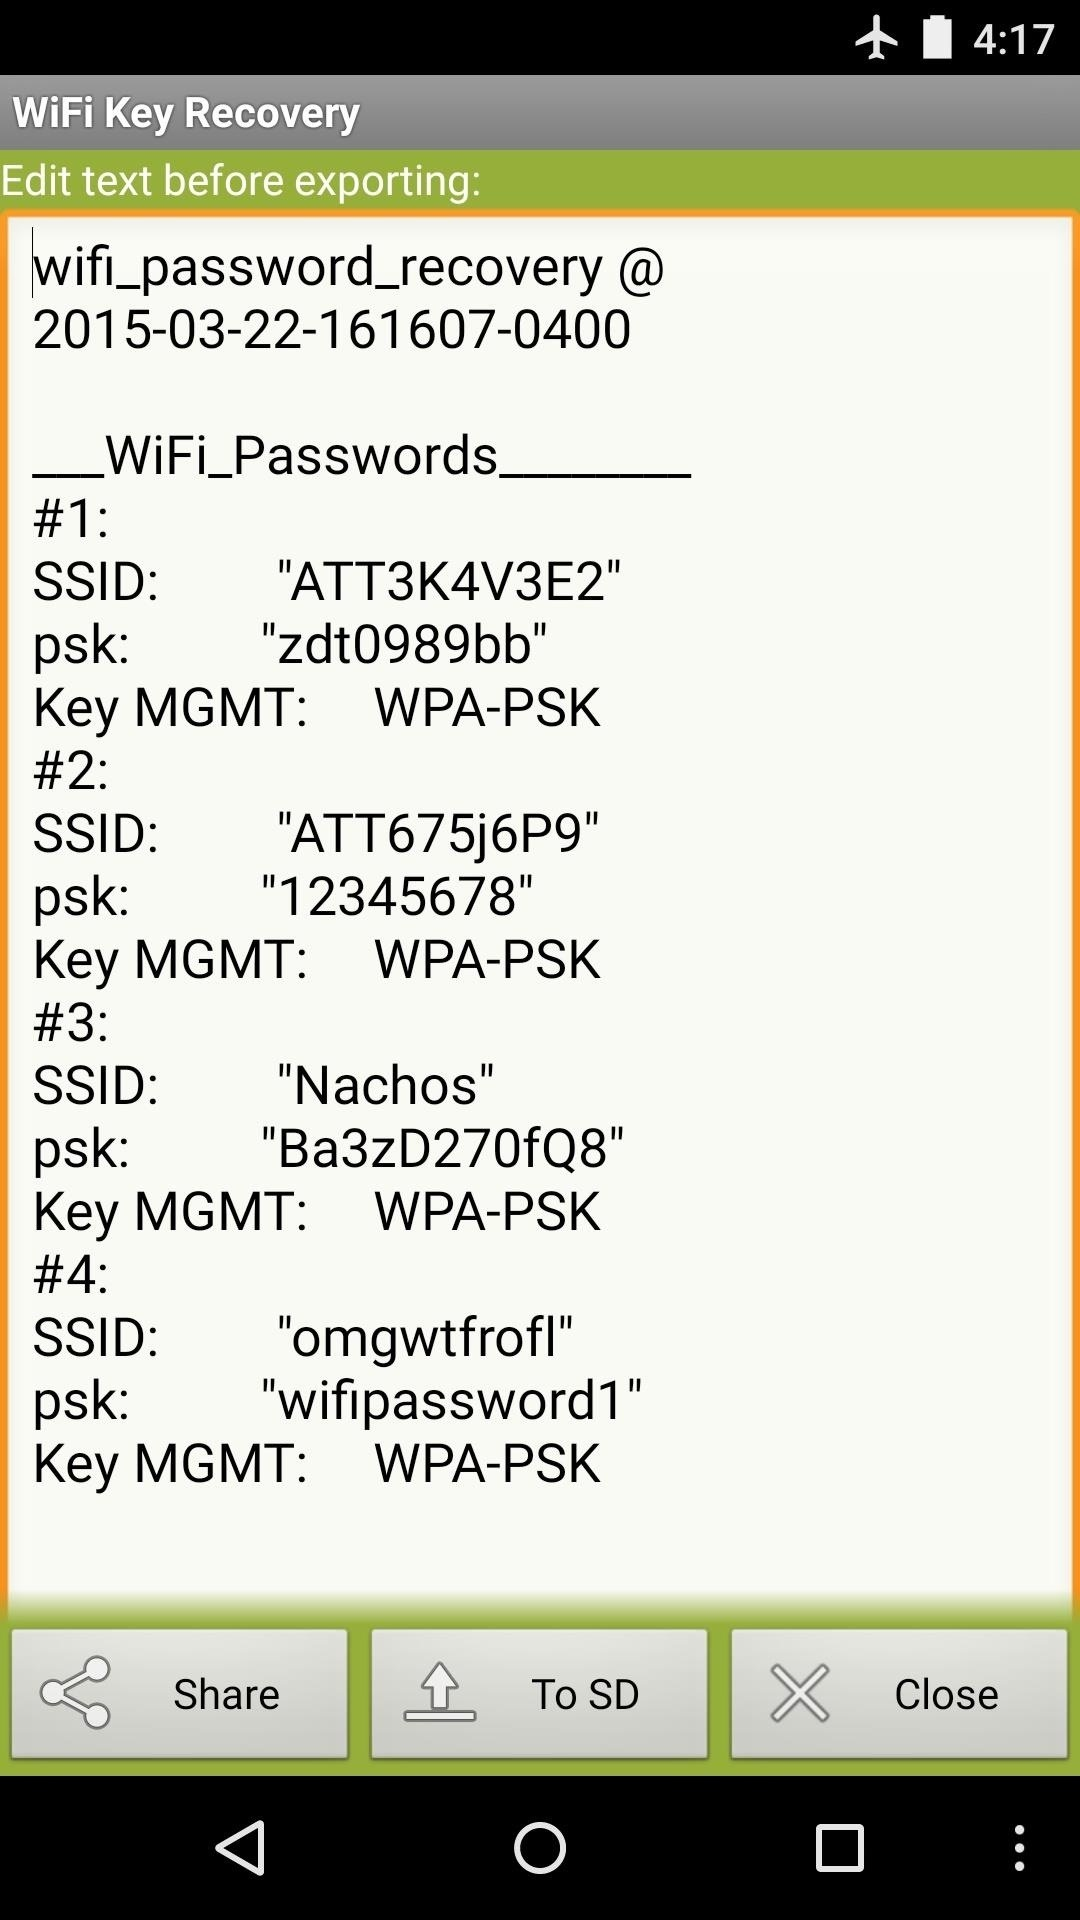 How can one get a WiFi password using an IP address in an Android